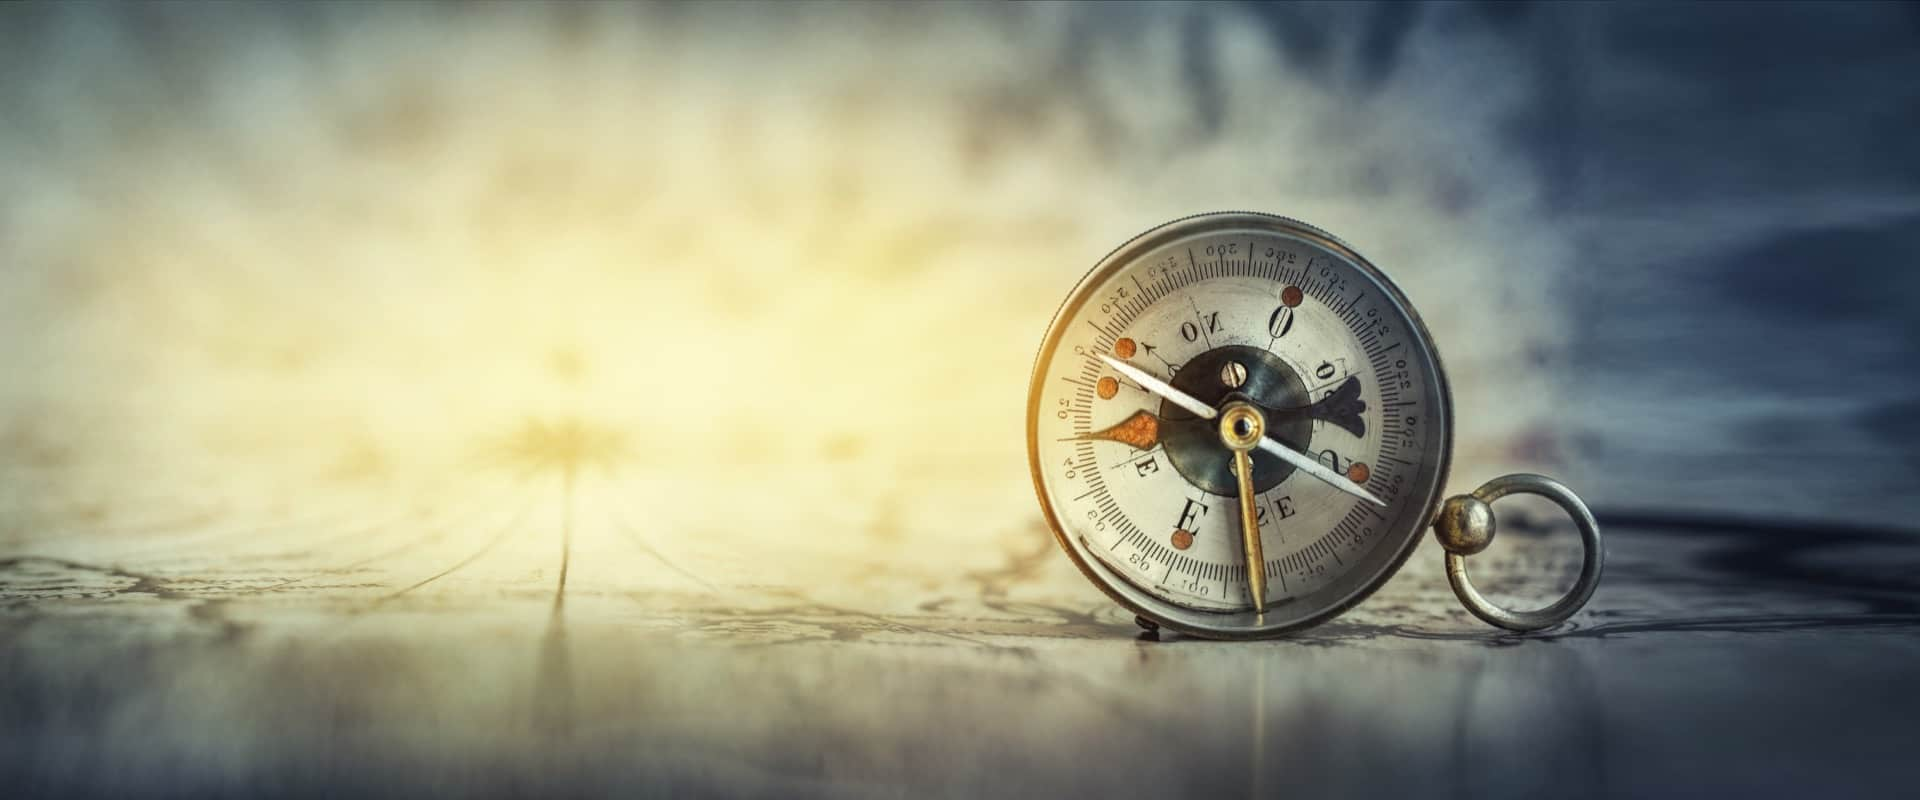 A vintage-style guiding compass standing on edge on top of an out-of-focus aged map.